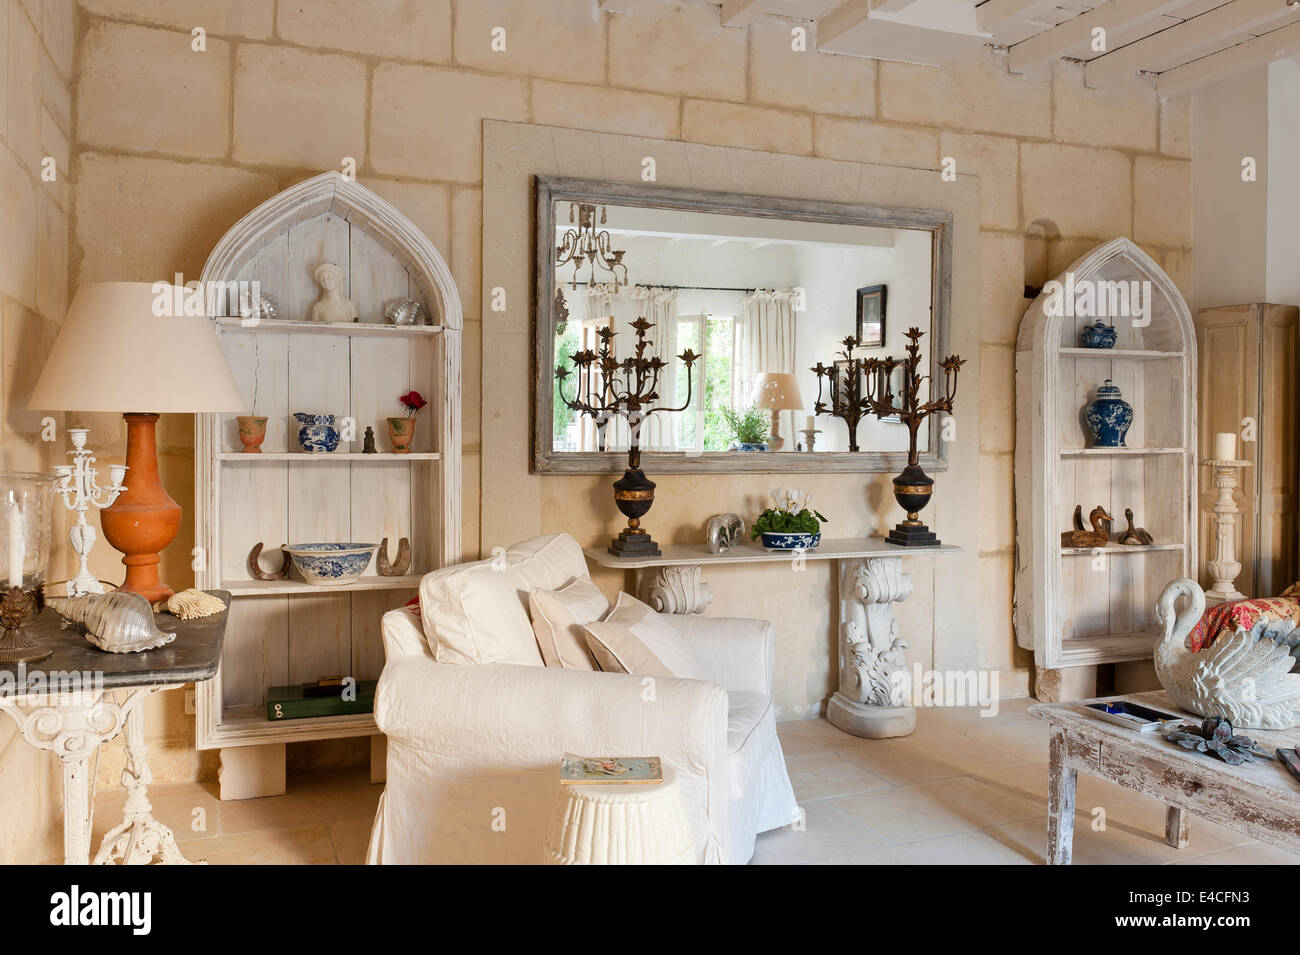 Pair of arched wooden shelves in sitting room with acanthus legged console table and candelabra. The walls are limestone blocks Stock Photo